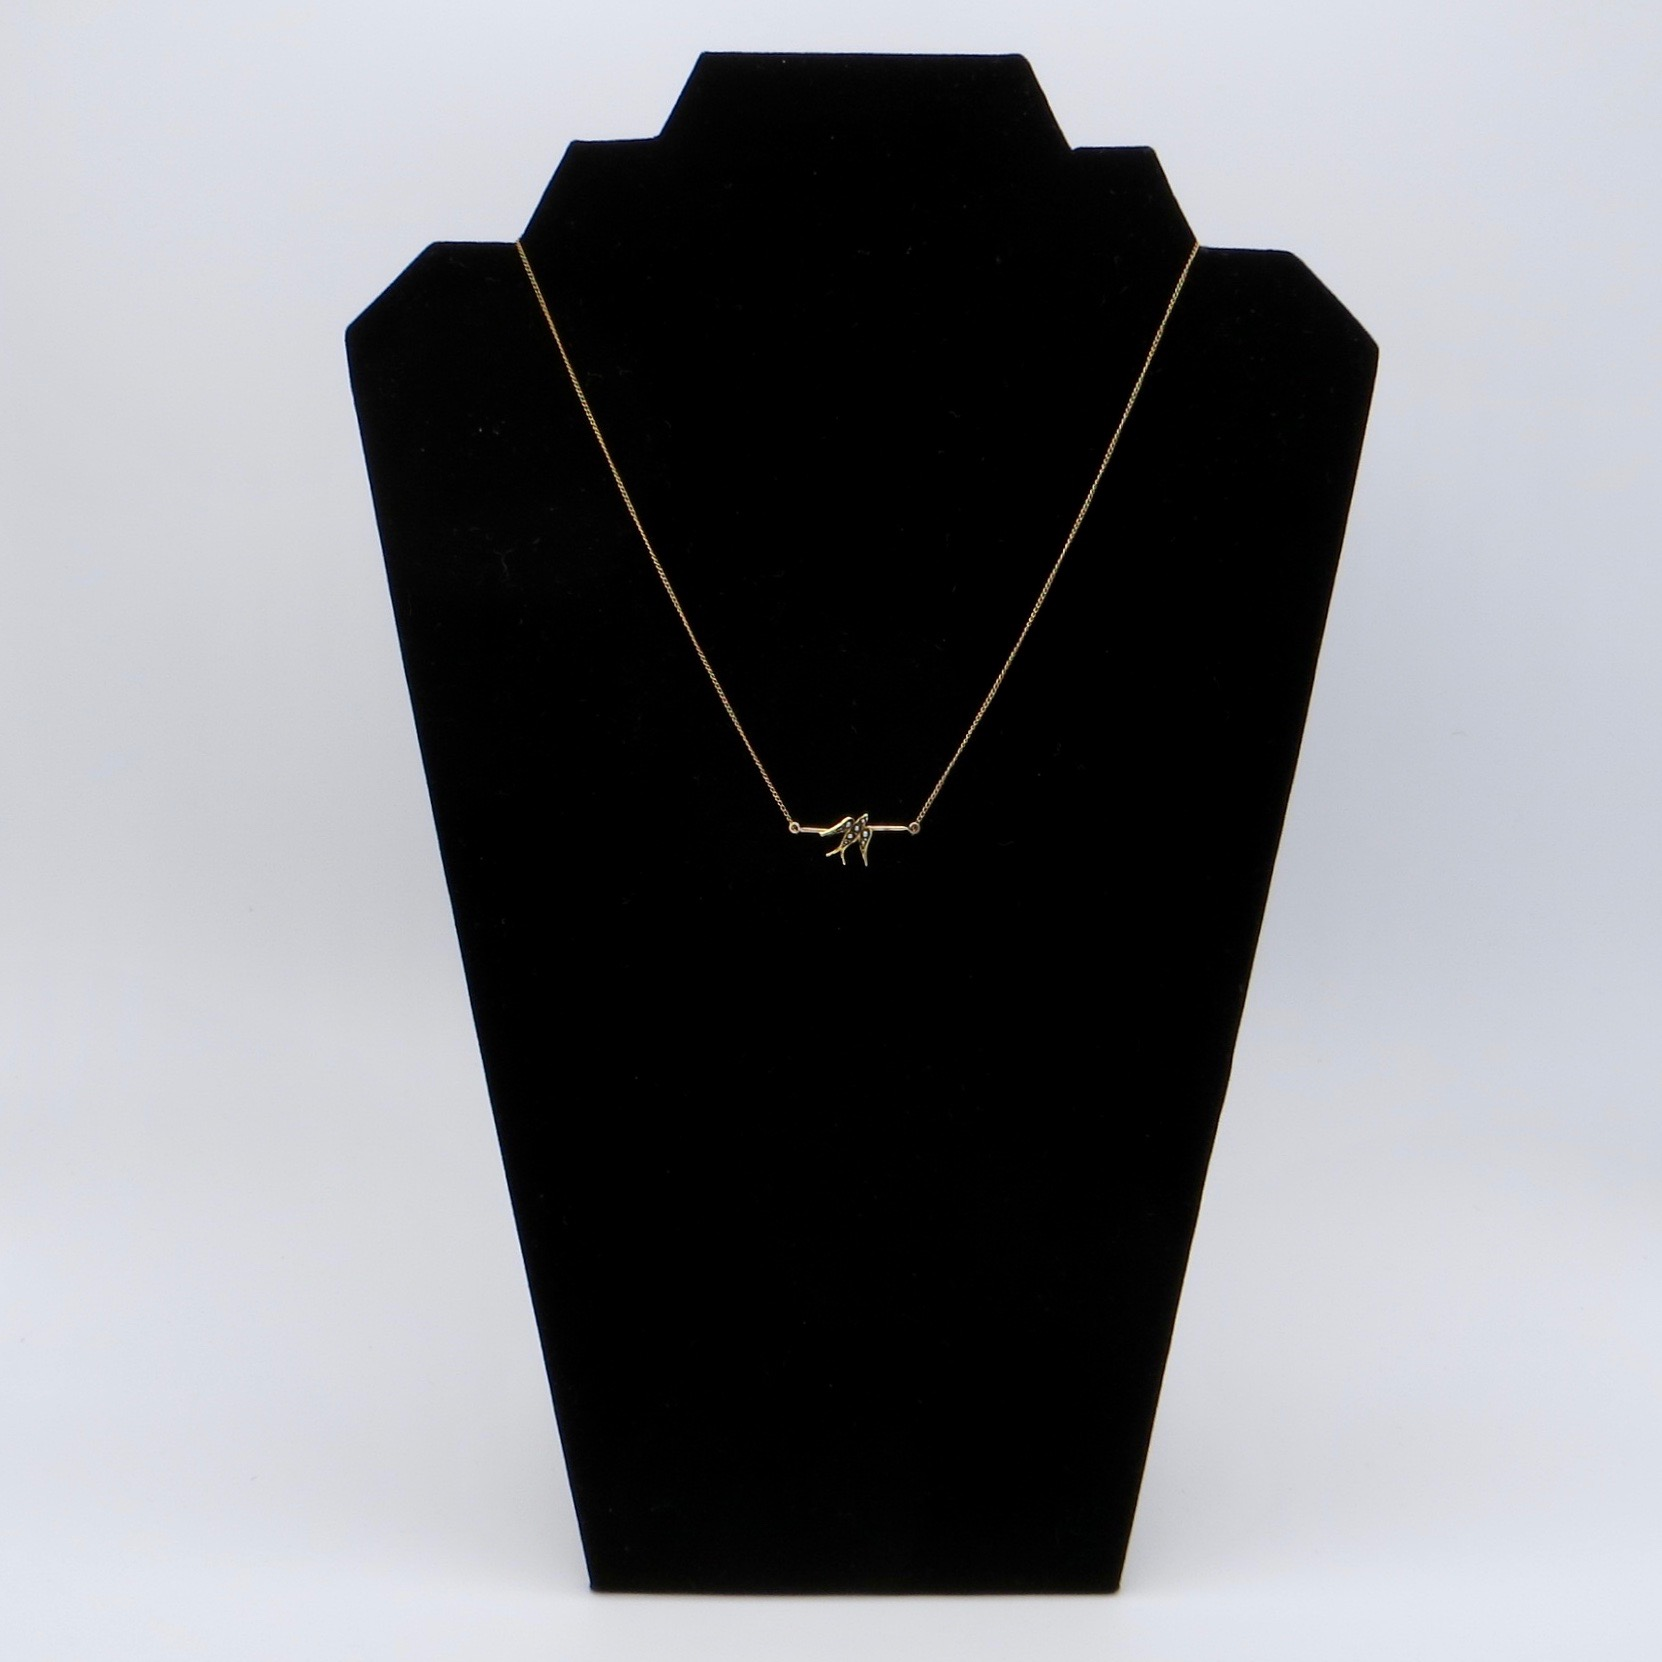 14kt Gold & Pearl Bird Necklace (GF Chain)